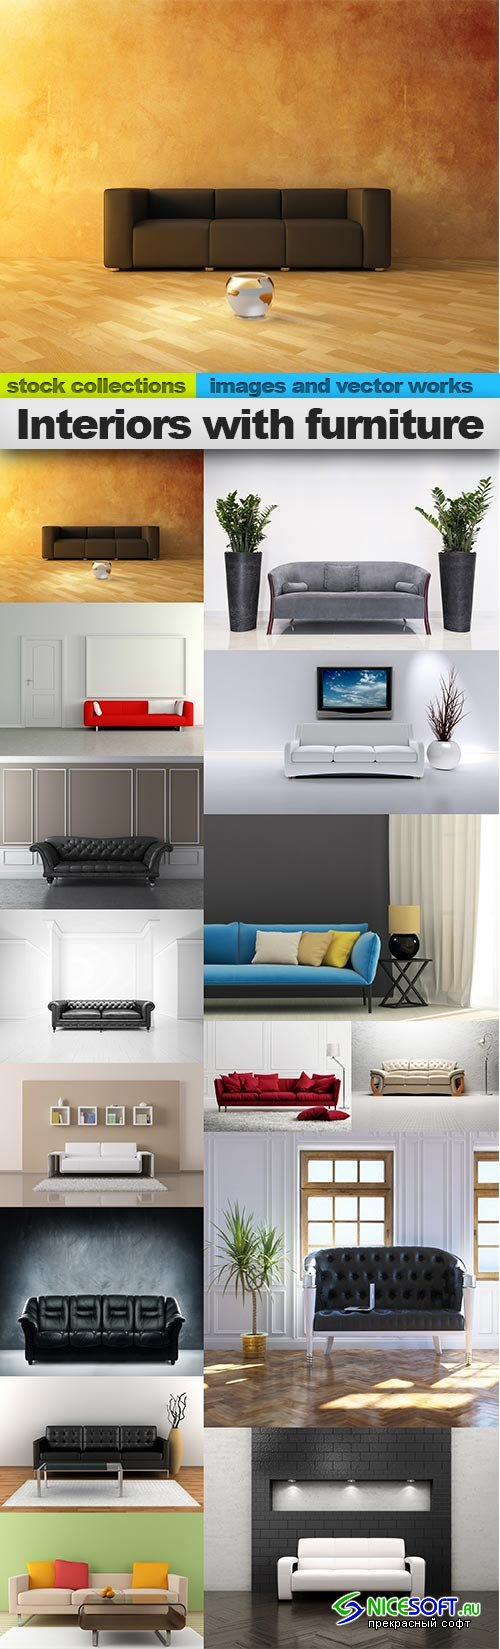 Interiors with furniture, 15 x UHQ JPEG